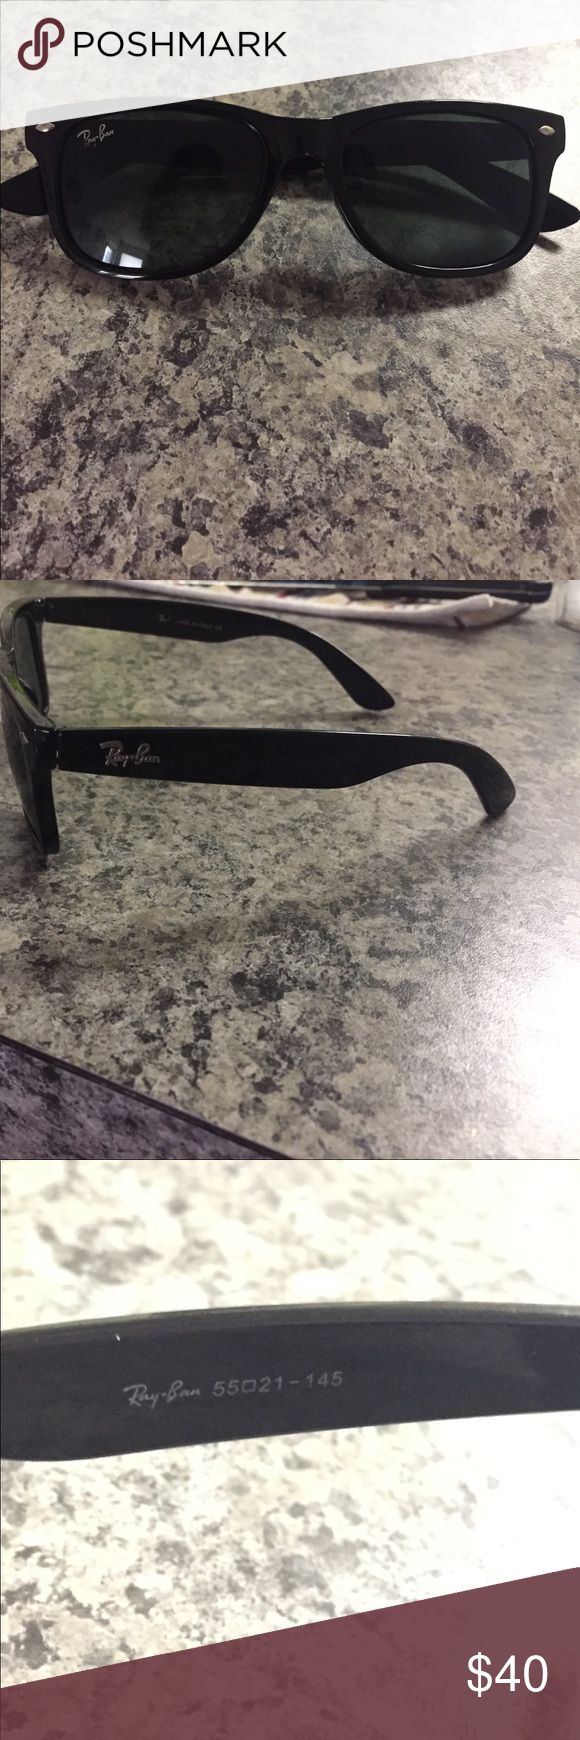 Wayfarer Ray Ban sunglasses-large Original Wayfarer Ray Ban sunglasses. 55 mm (large) comes with case and cleaning cloth. Rarely worn. Ray-Ban Accessories Sunglasses